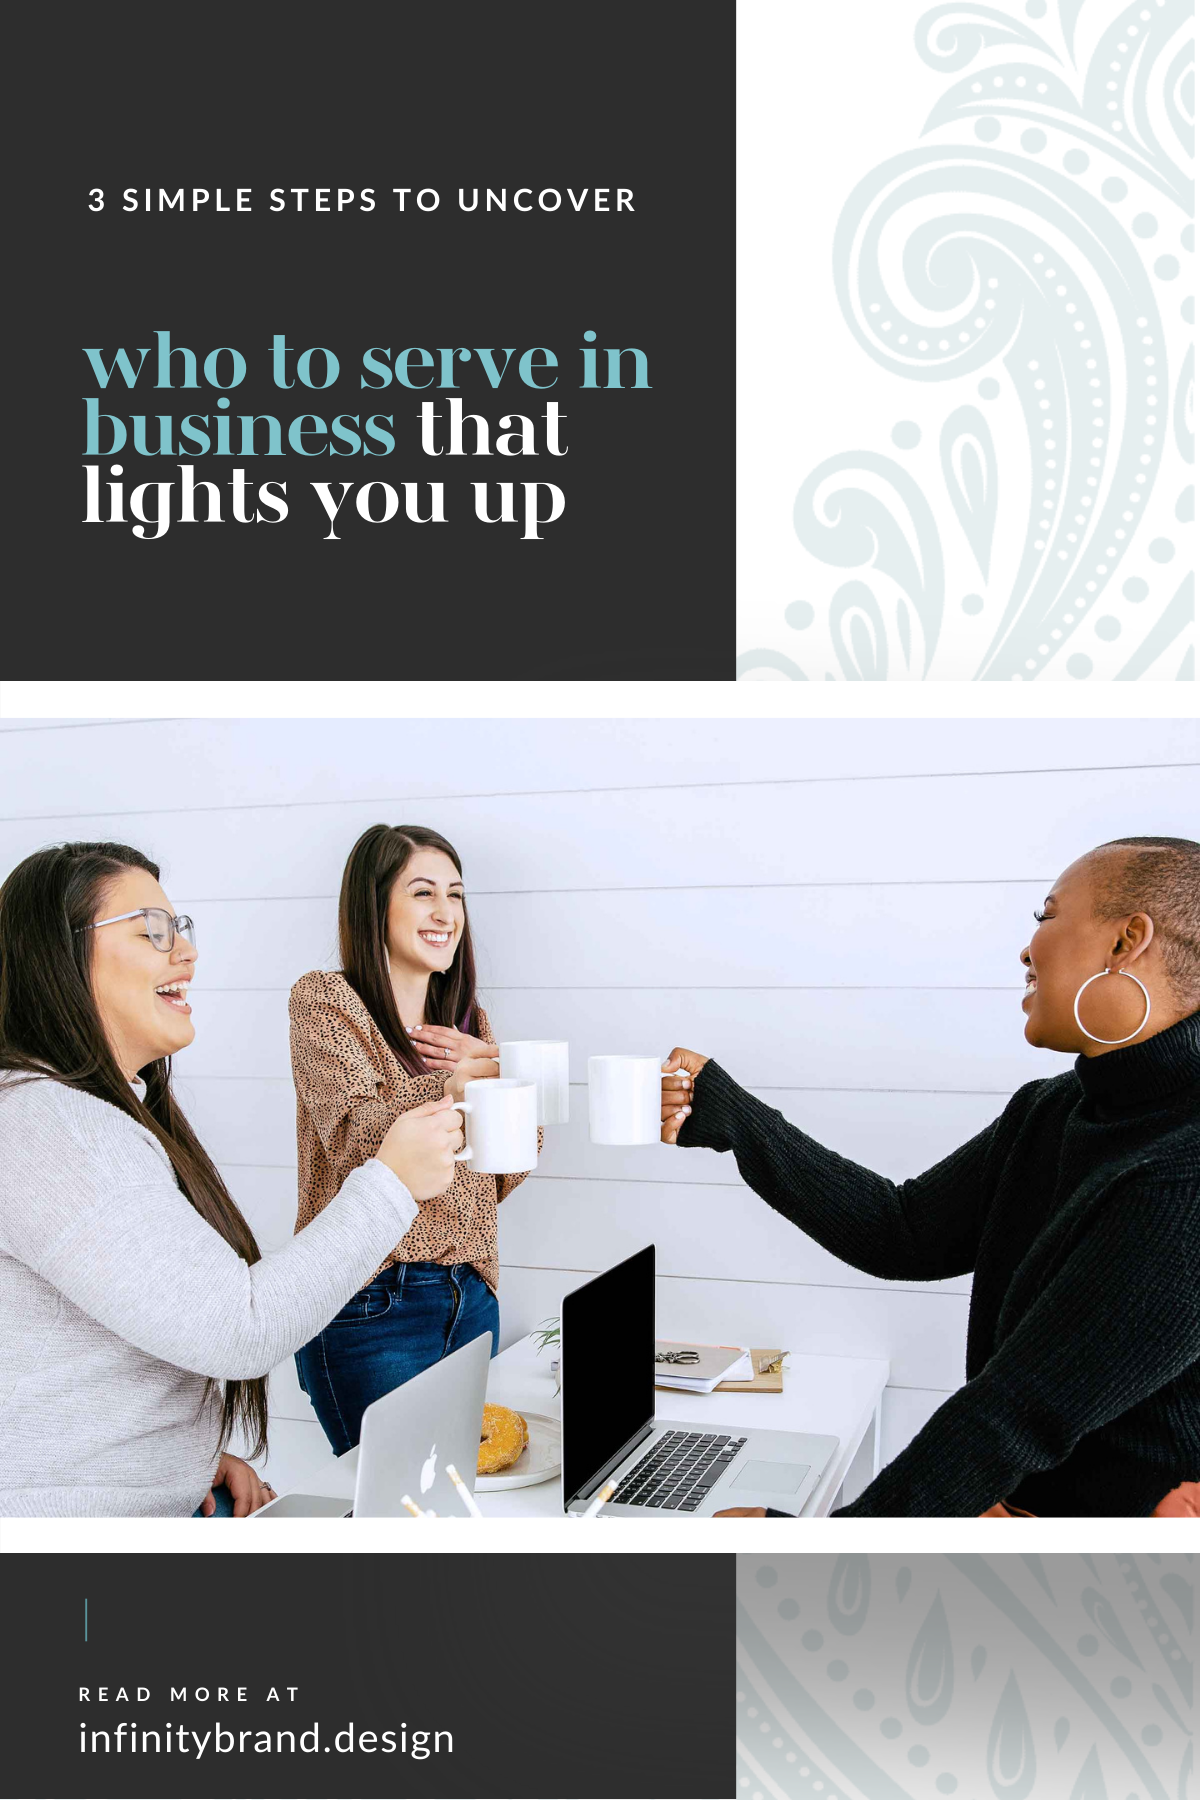 Tips to get clear on who you serve in your business that lights you up, sparks that fire within, and feels aligned with you so that waking up on Monday's is actually enjoyable.